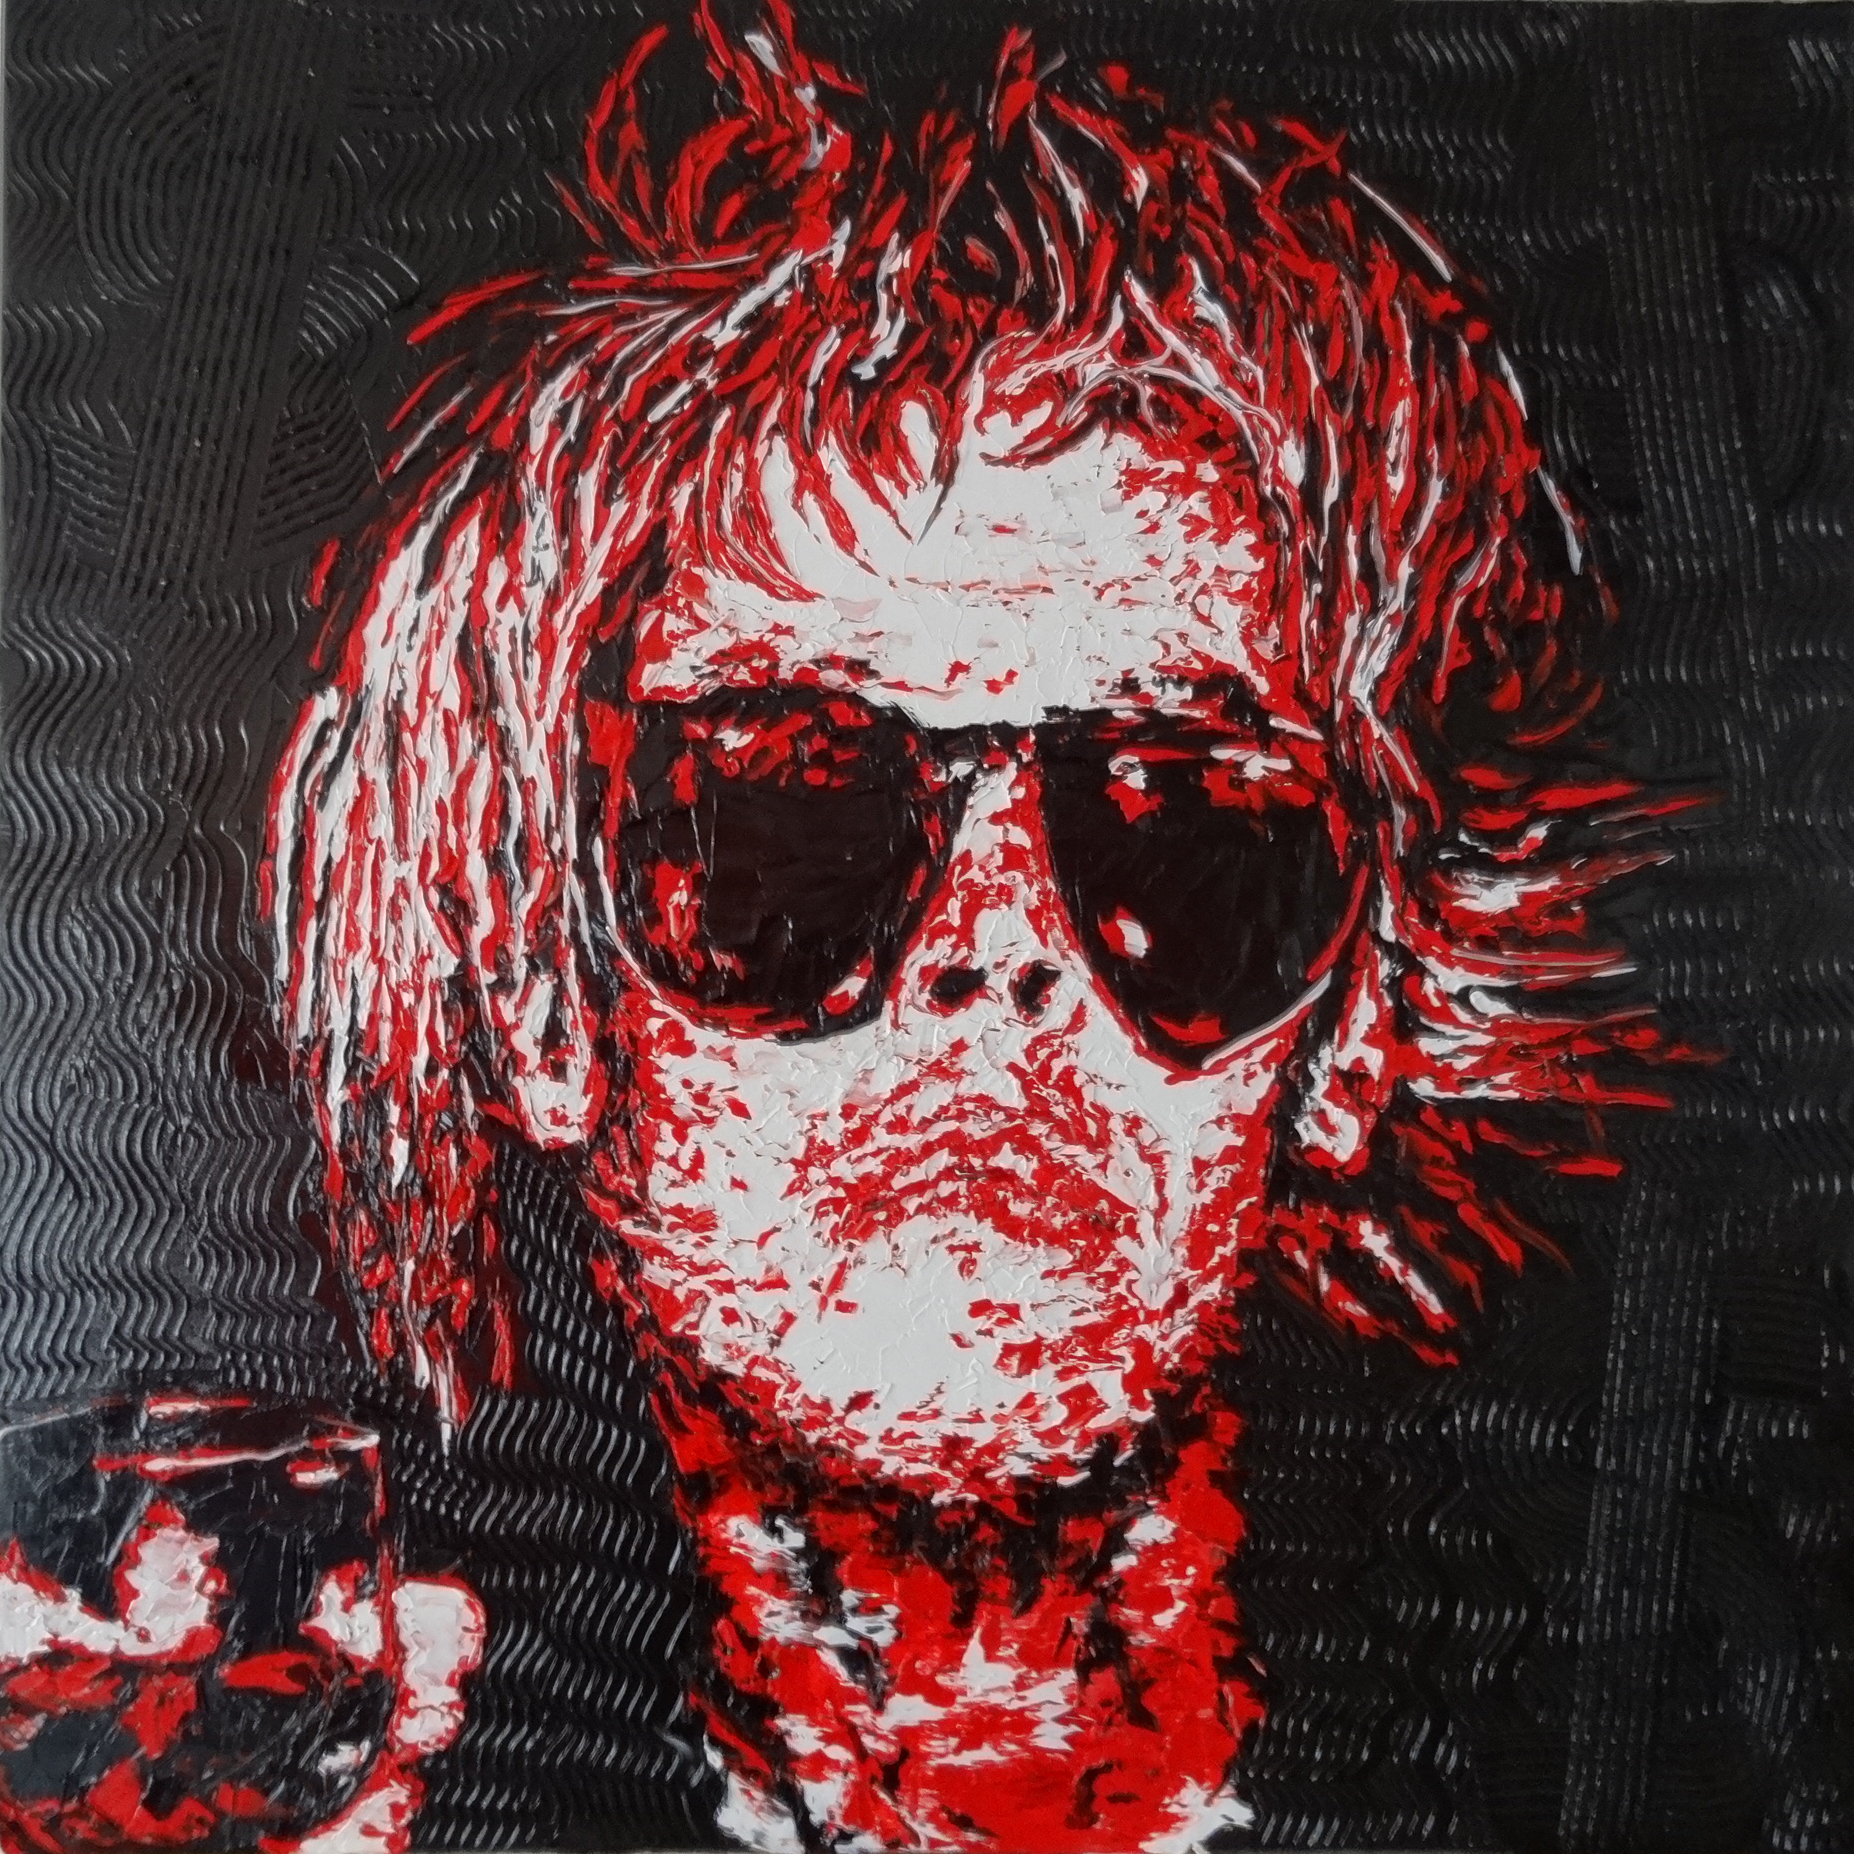 Warhol Selfportrait No1 artwork by HARRYS - art listed for sale on Artplode